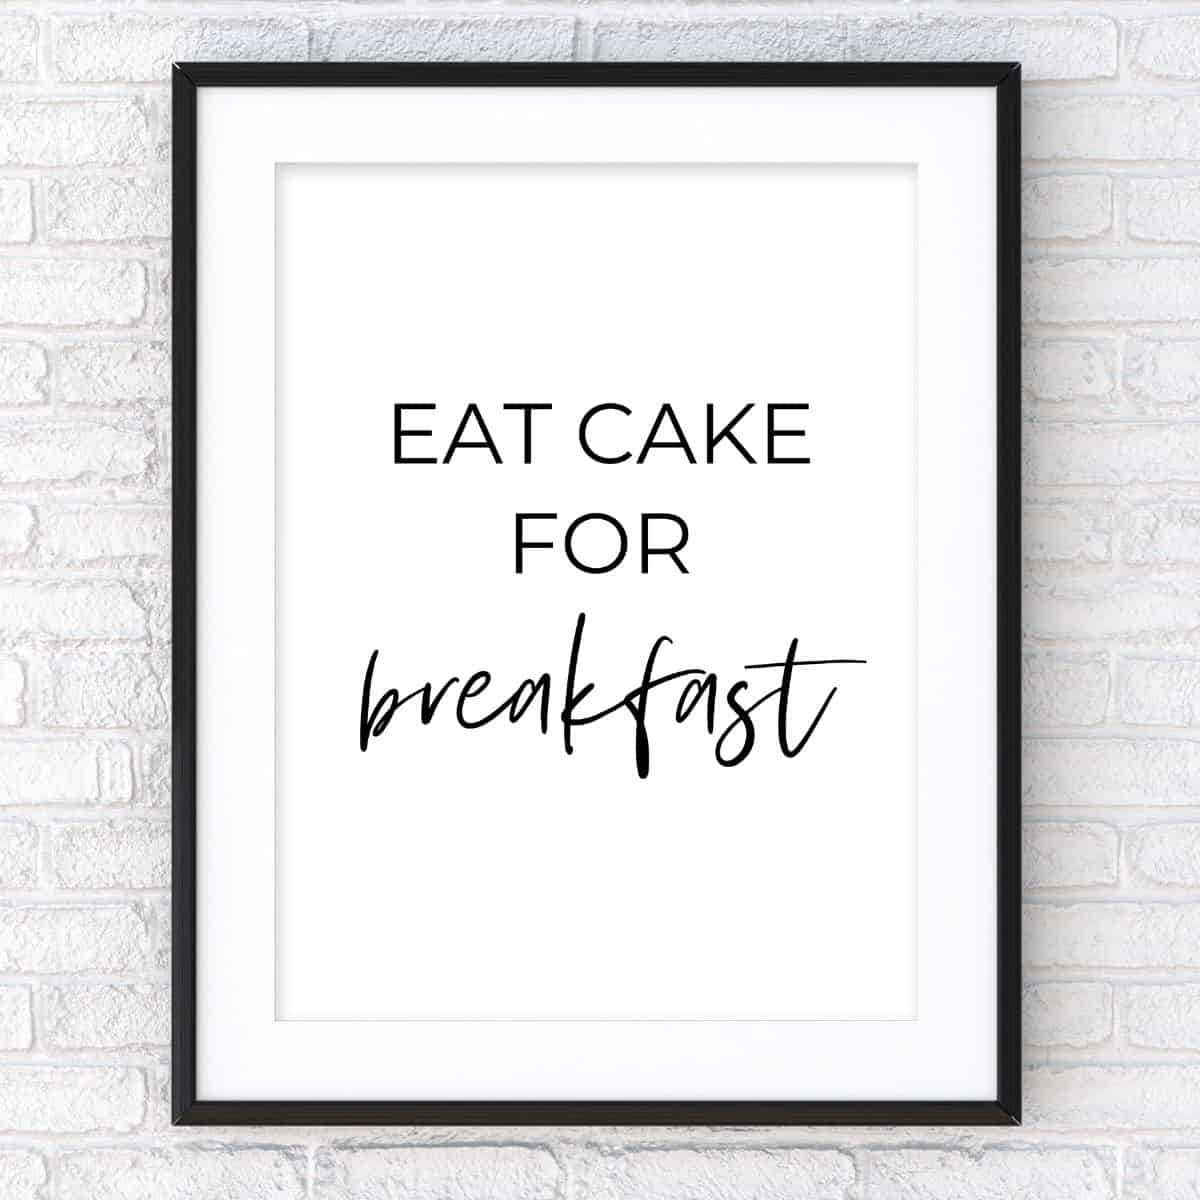 Black frame on the brick wall with the text: Eat cake for breakfast